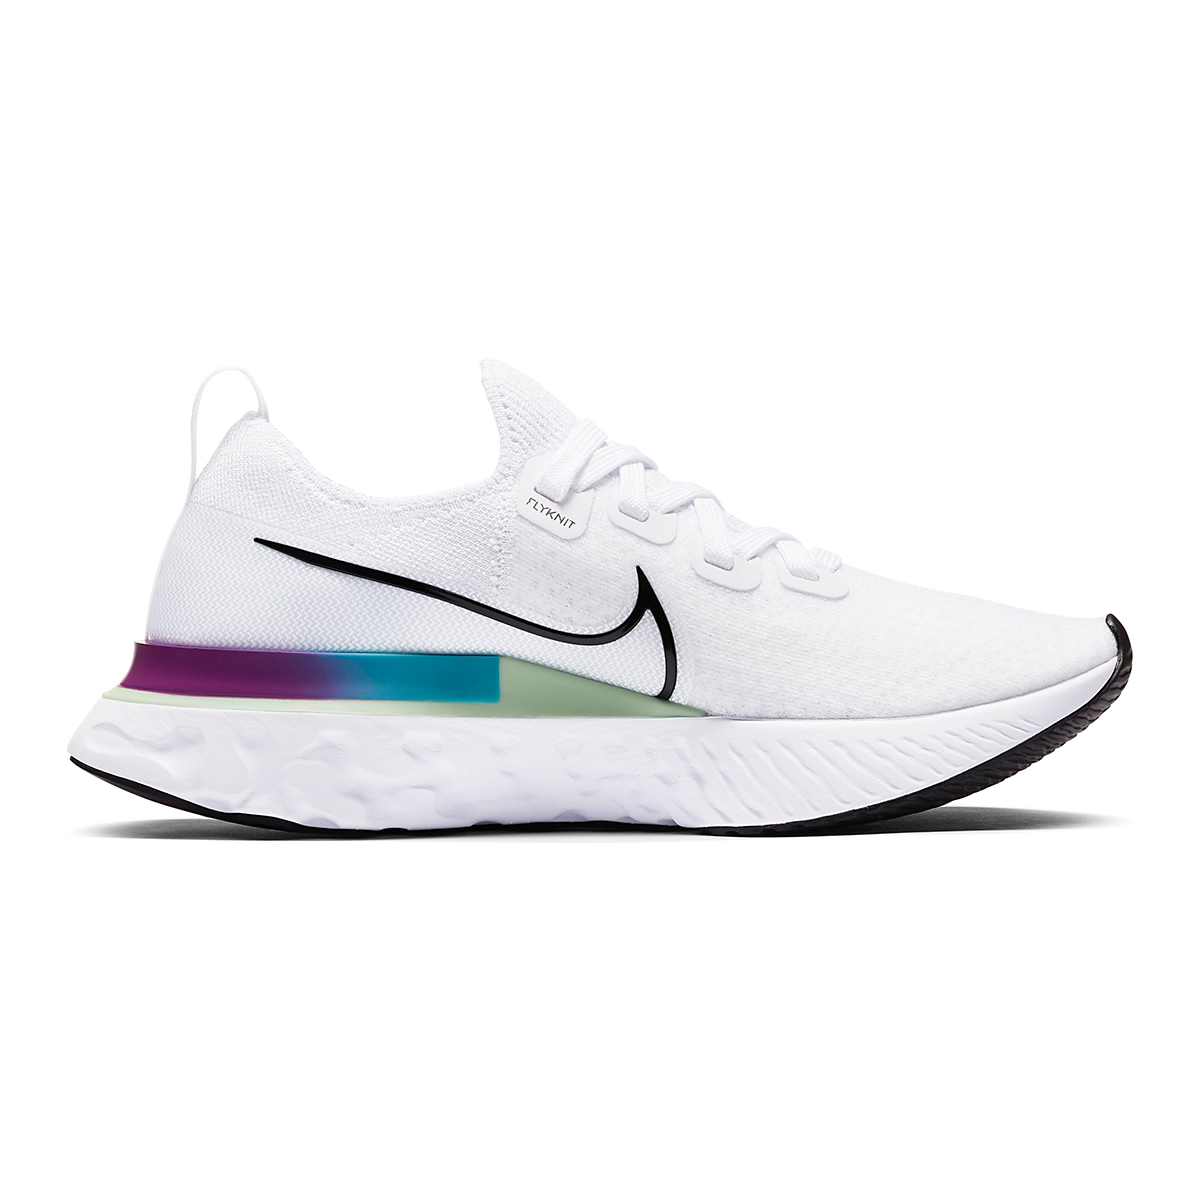 Women's Nike React Infinity Run Flyknit Running Shoe - Color: White/Vapor Green/Oracle Aqua/Black - Size: 5 - Width: Regular, White/Vapor Green/Oracle Aqua/Black, large, image 2